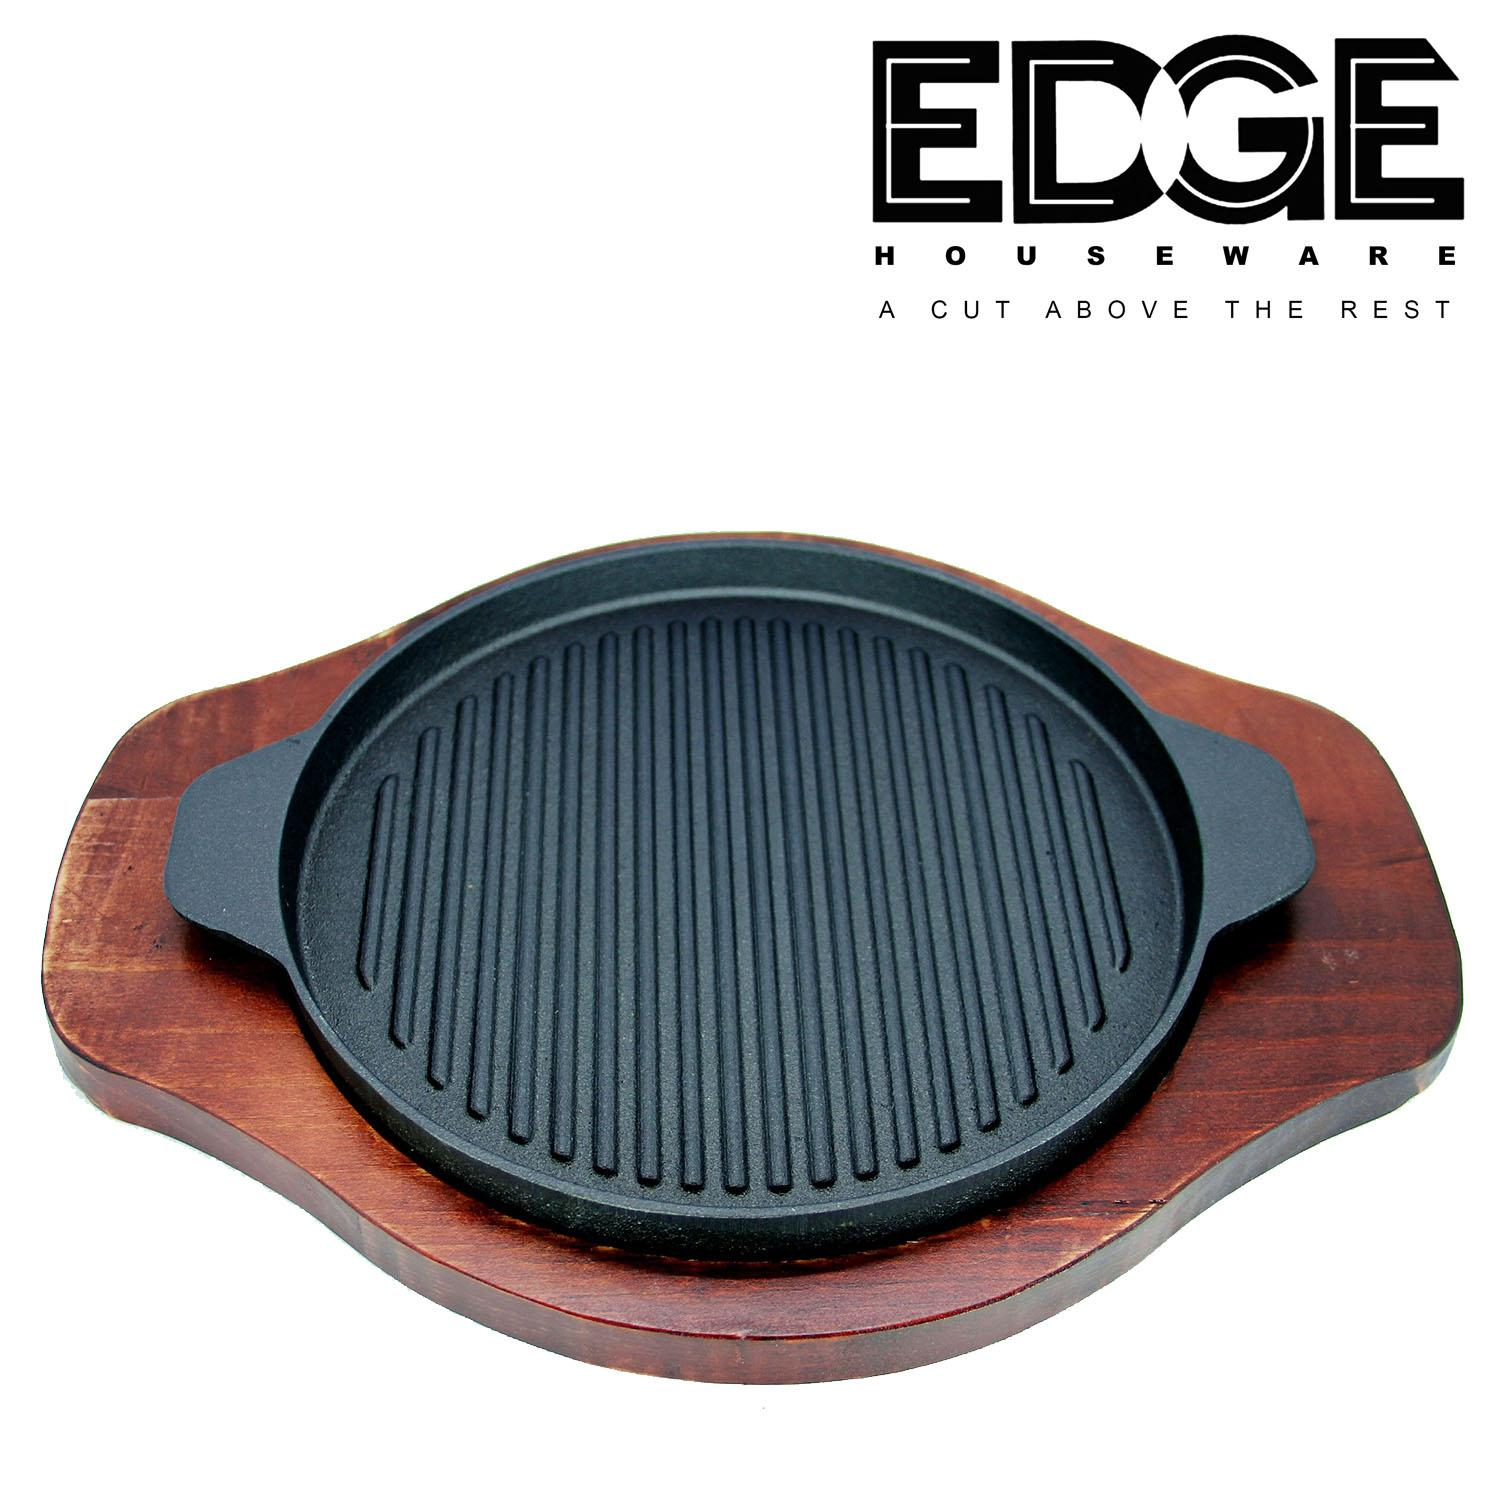 Edge Houseware Sizzling Plate Round 24CM Catering Restaurant buffet